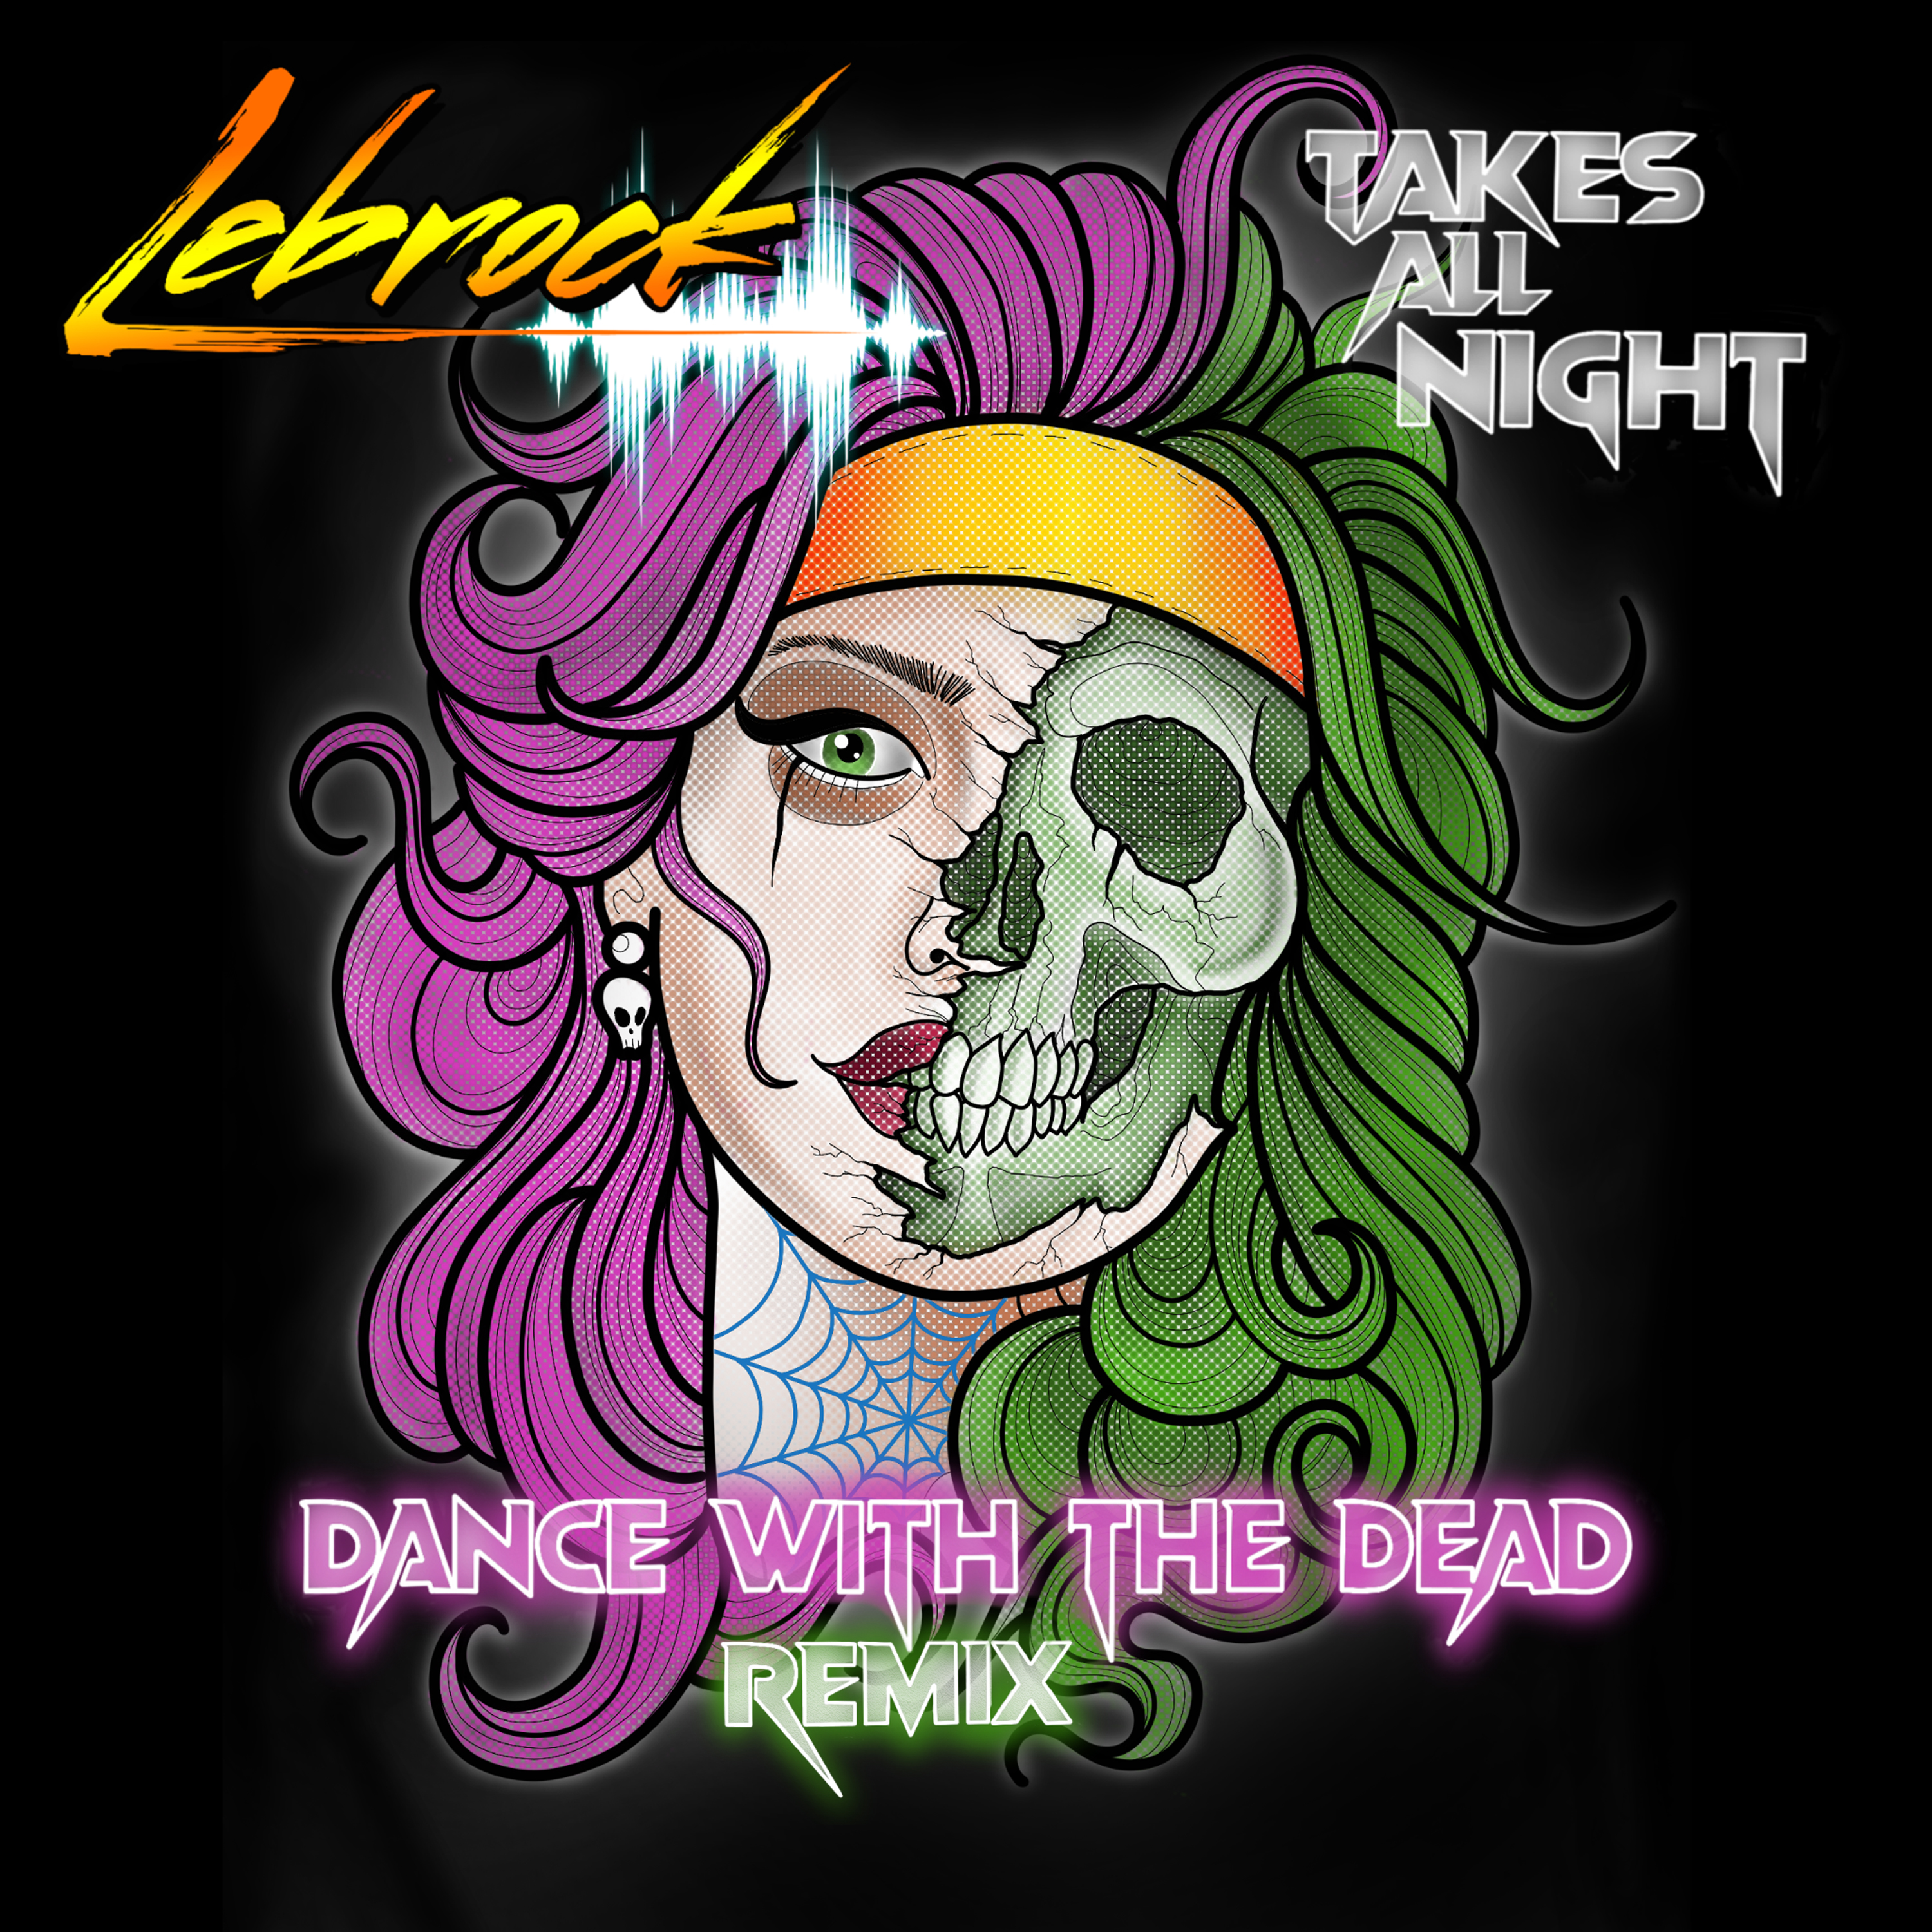 LeBrock - Takes All Night (Dance With The Dead Remix) [Single] Image